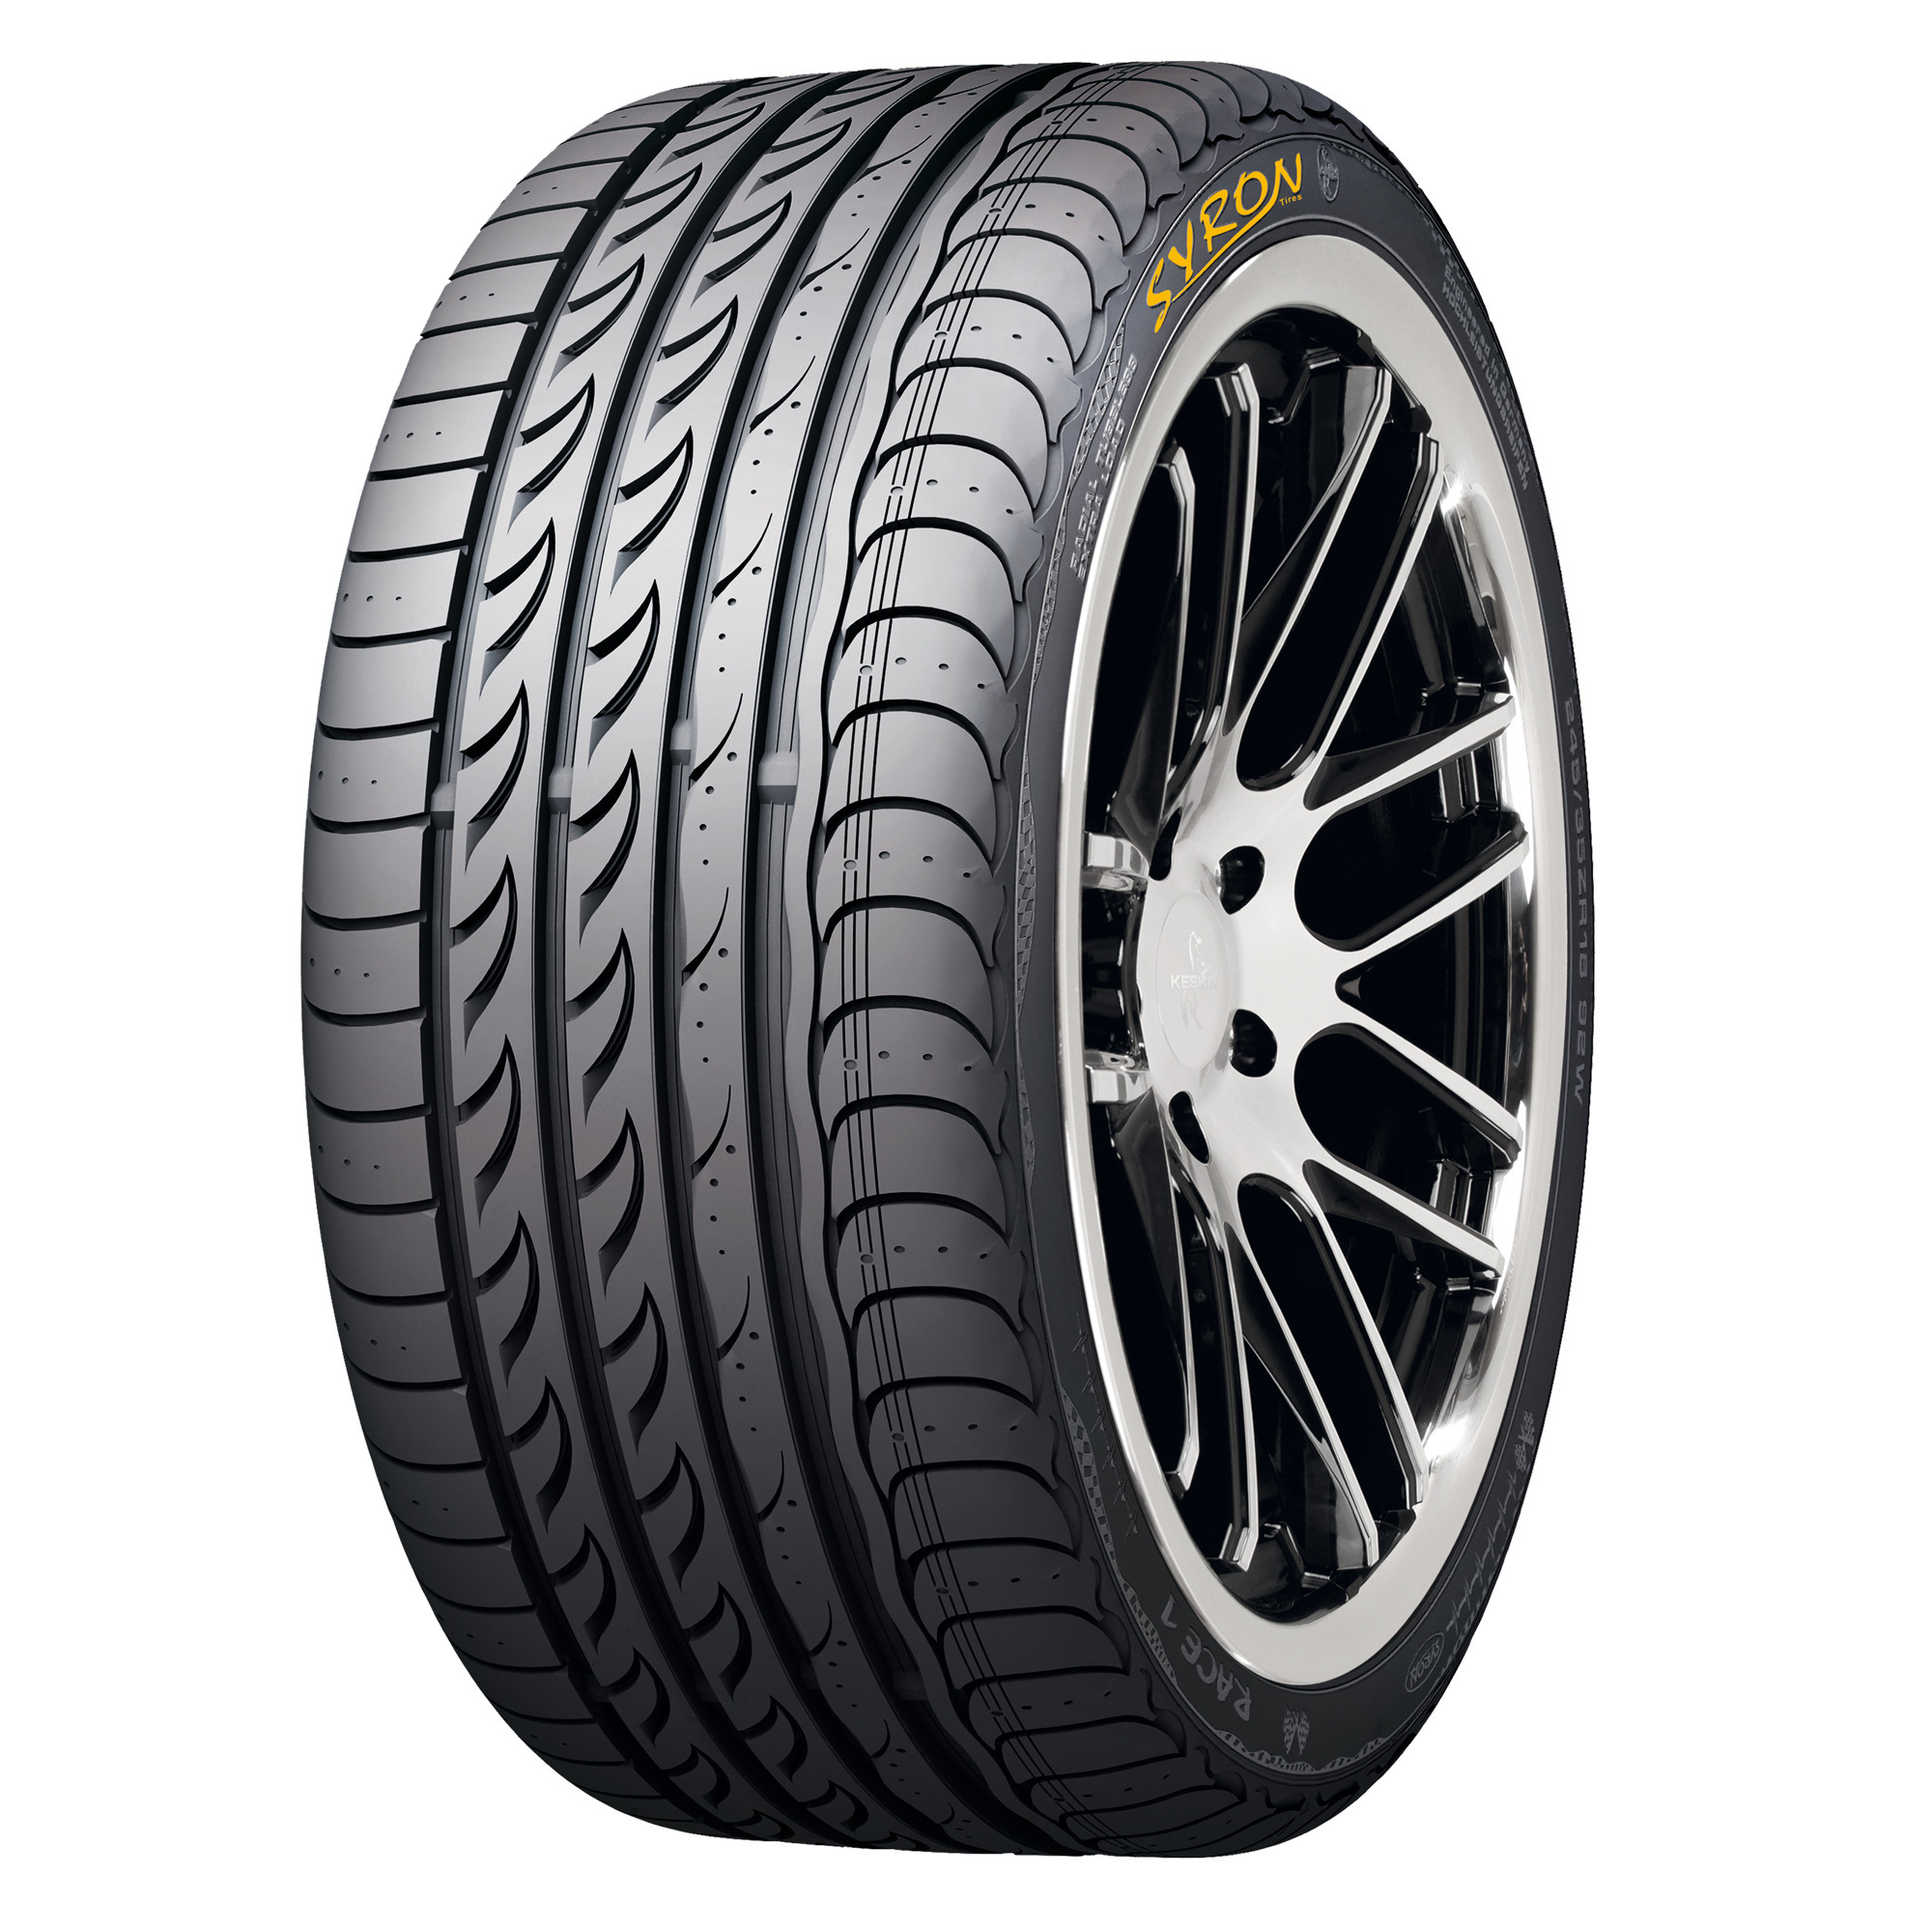 225/45R18 SYRON TIRES RACE1 plus 95W XL